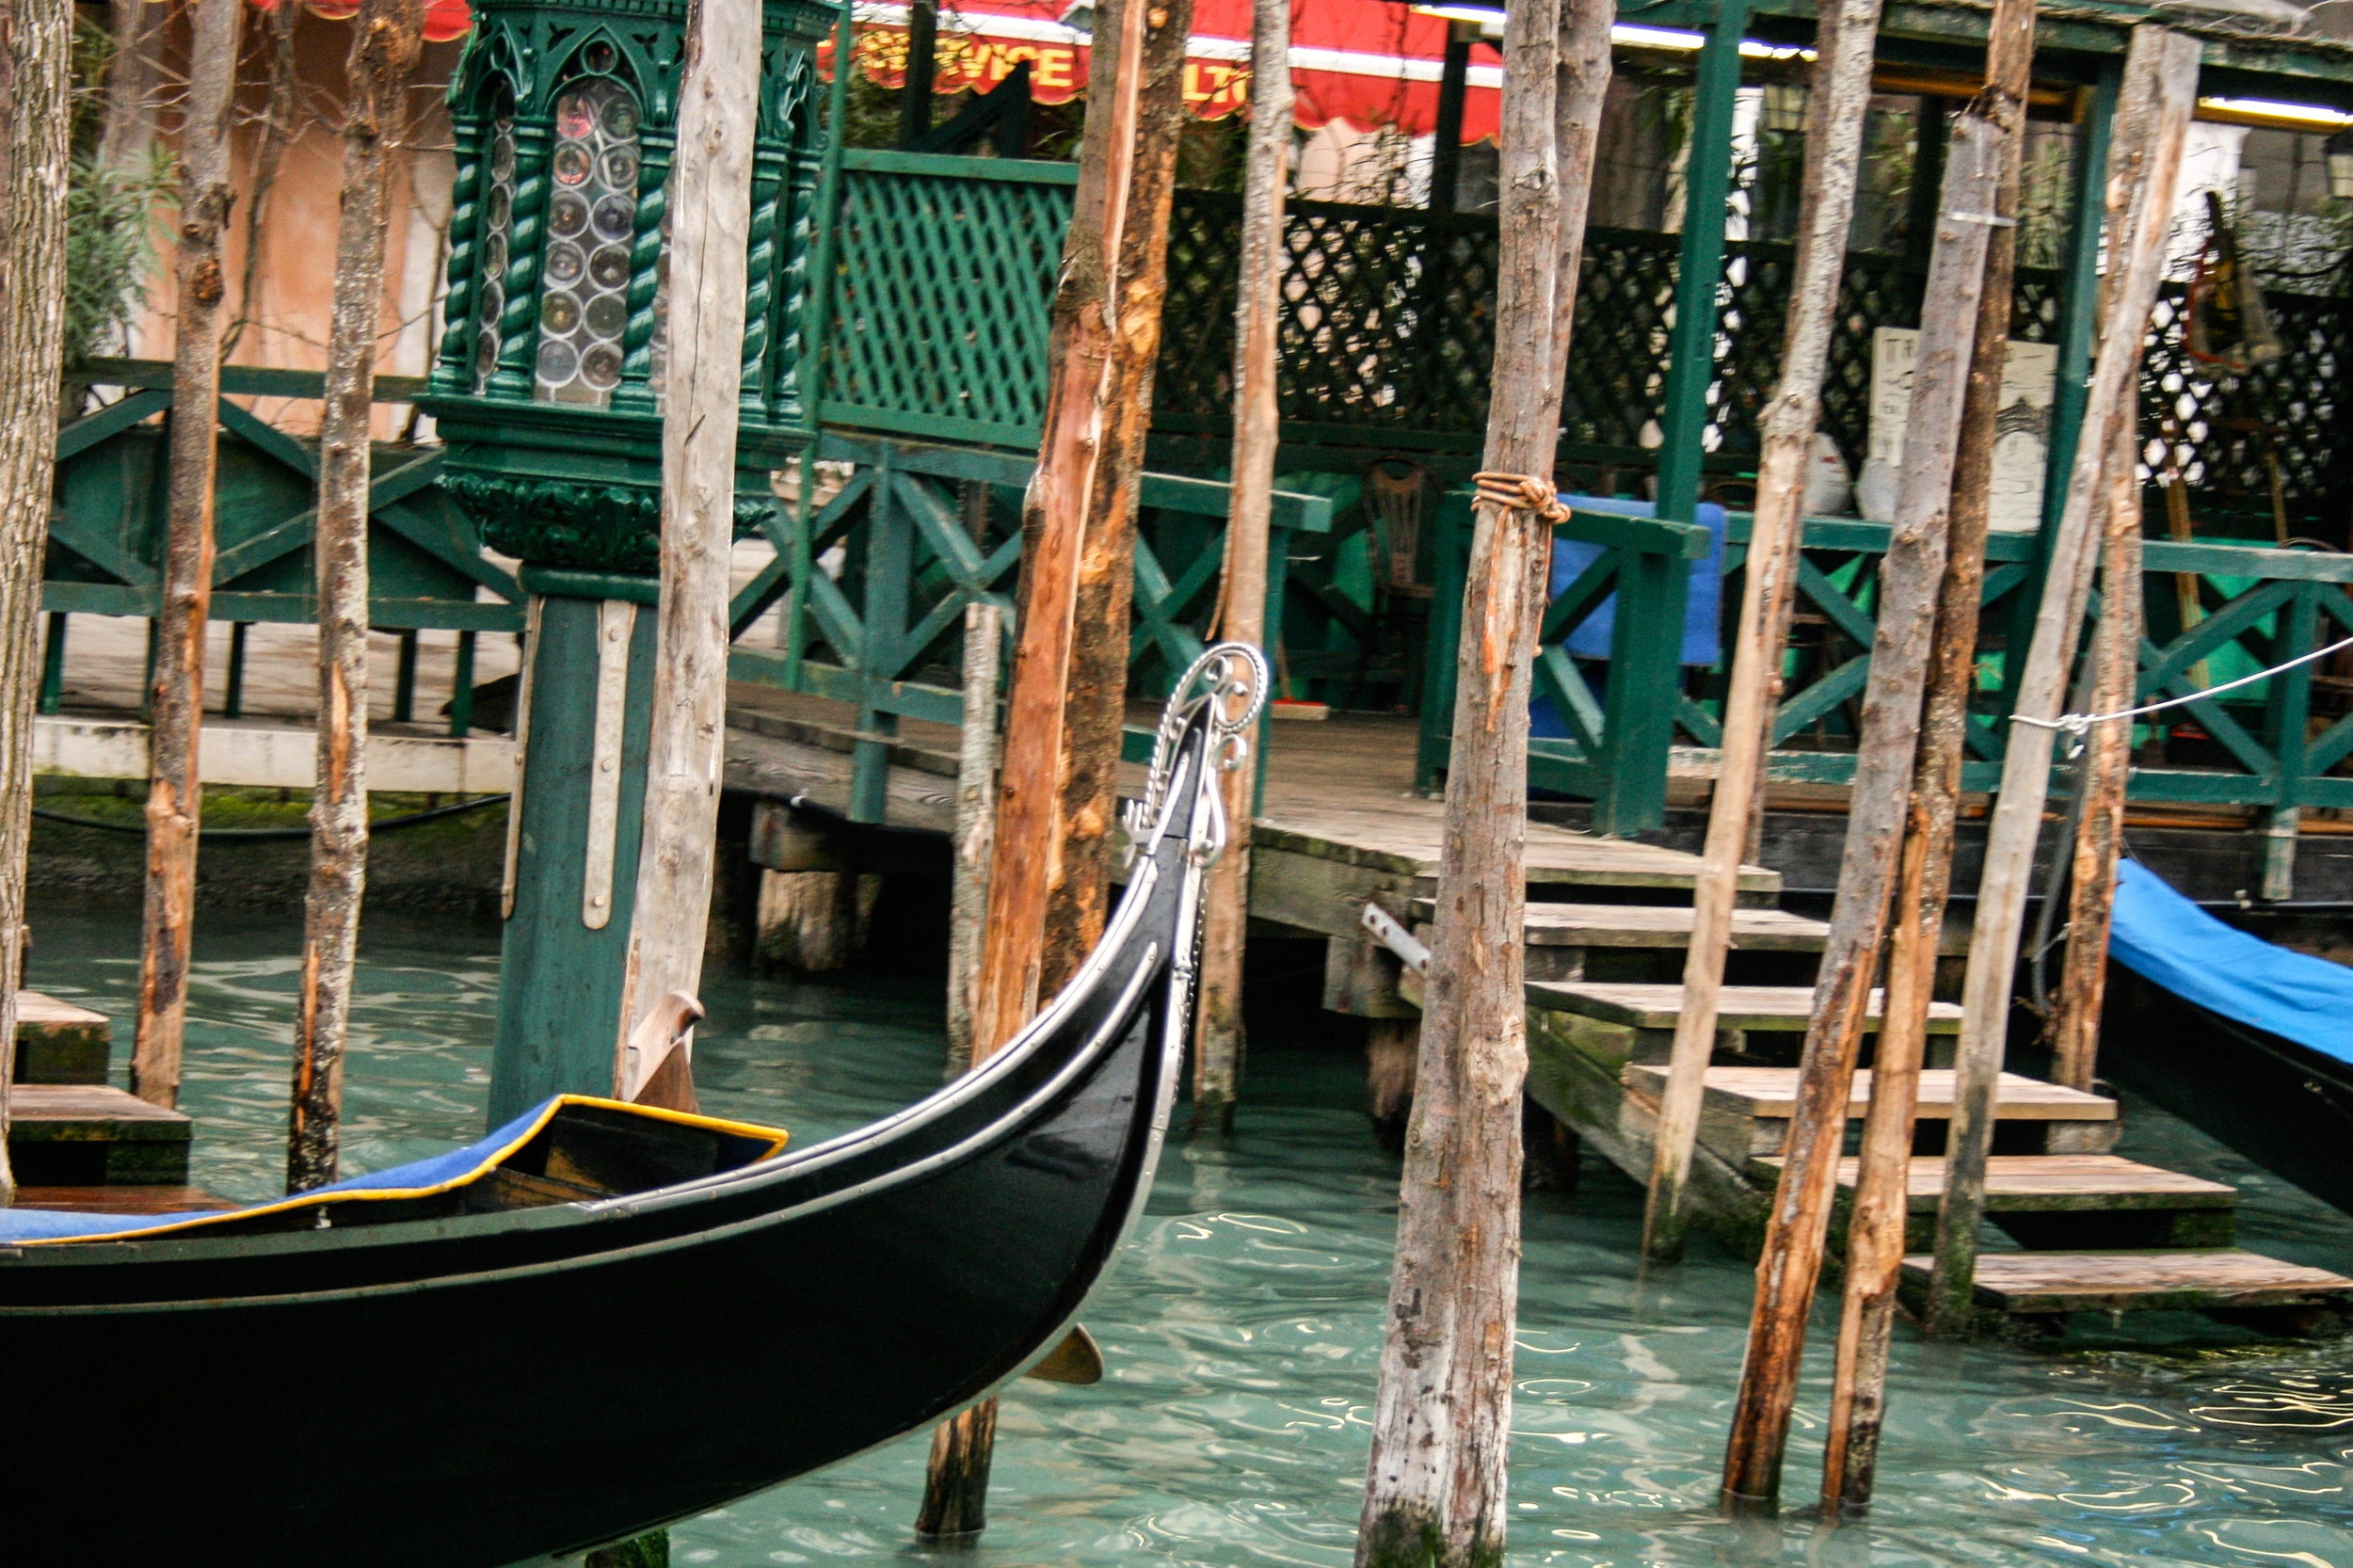 Gondolas tied up on the Grand Canal